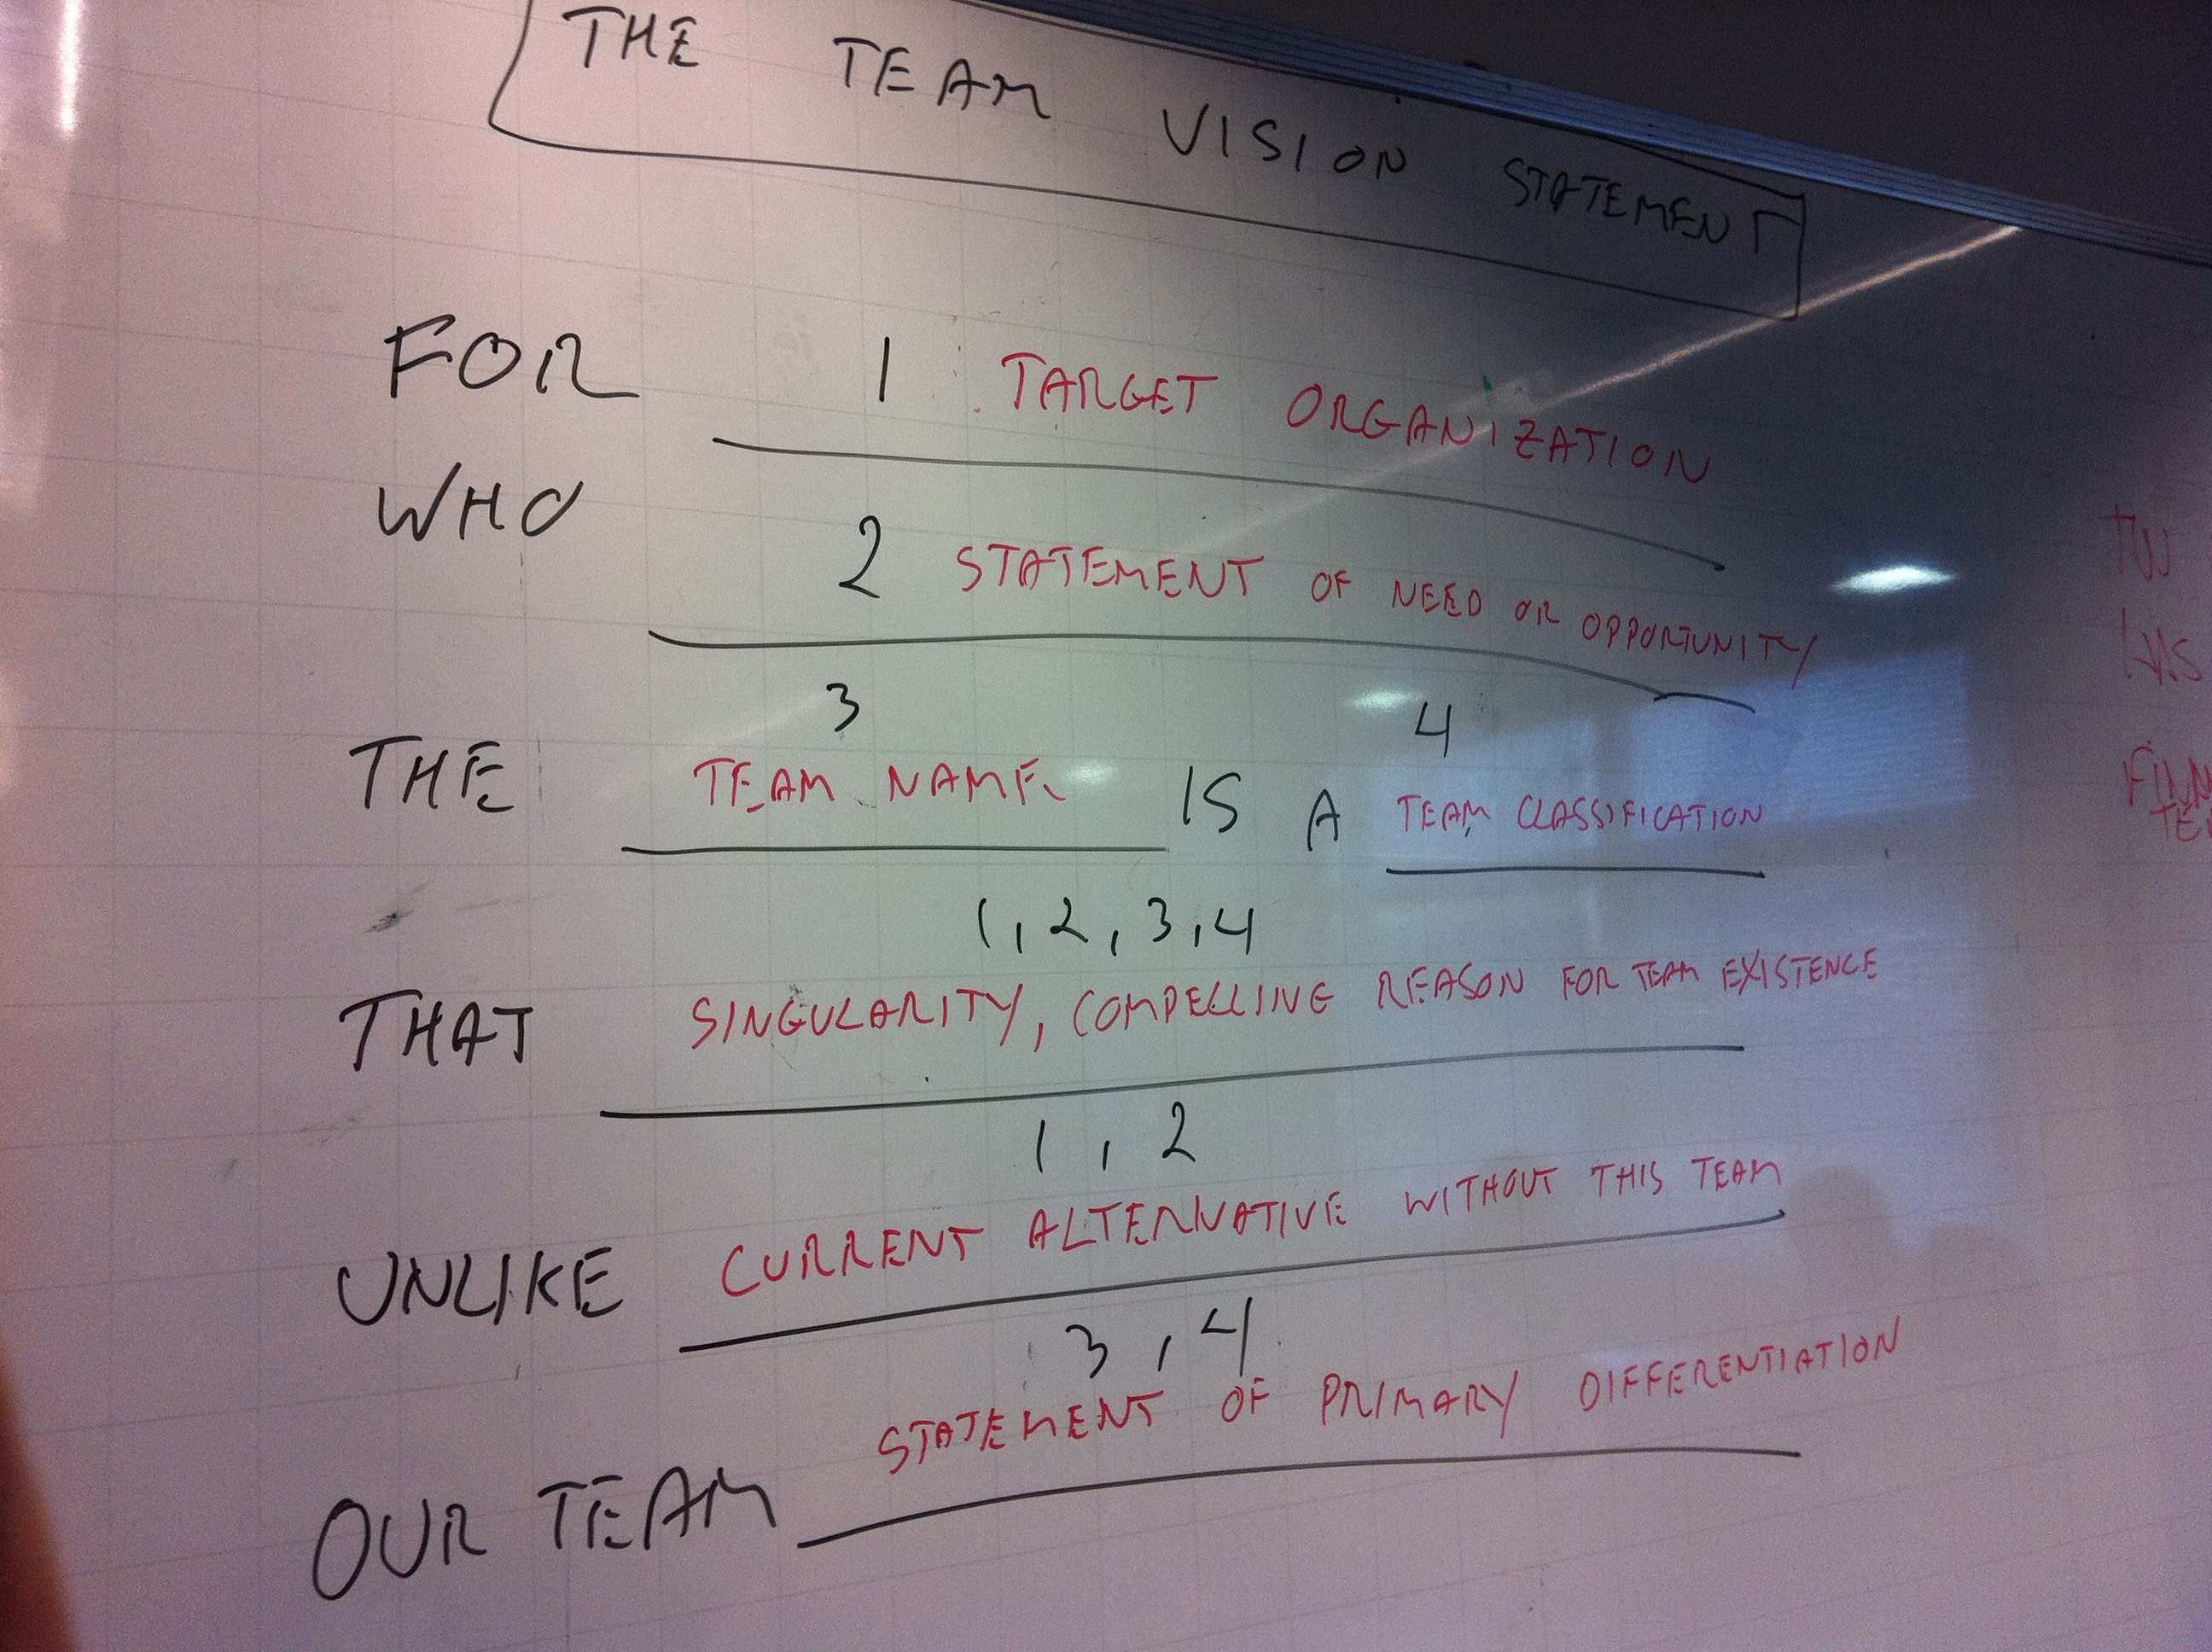 Defining The Team Vision Statement Fun Retrospectives